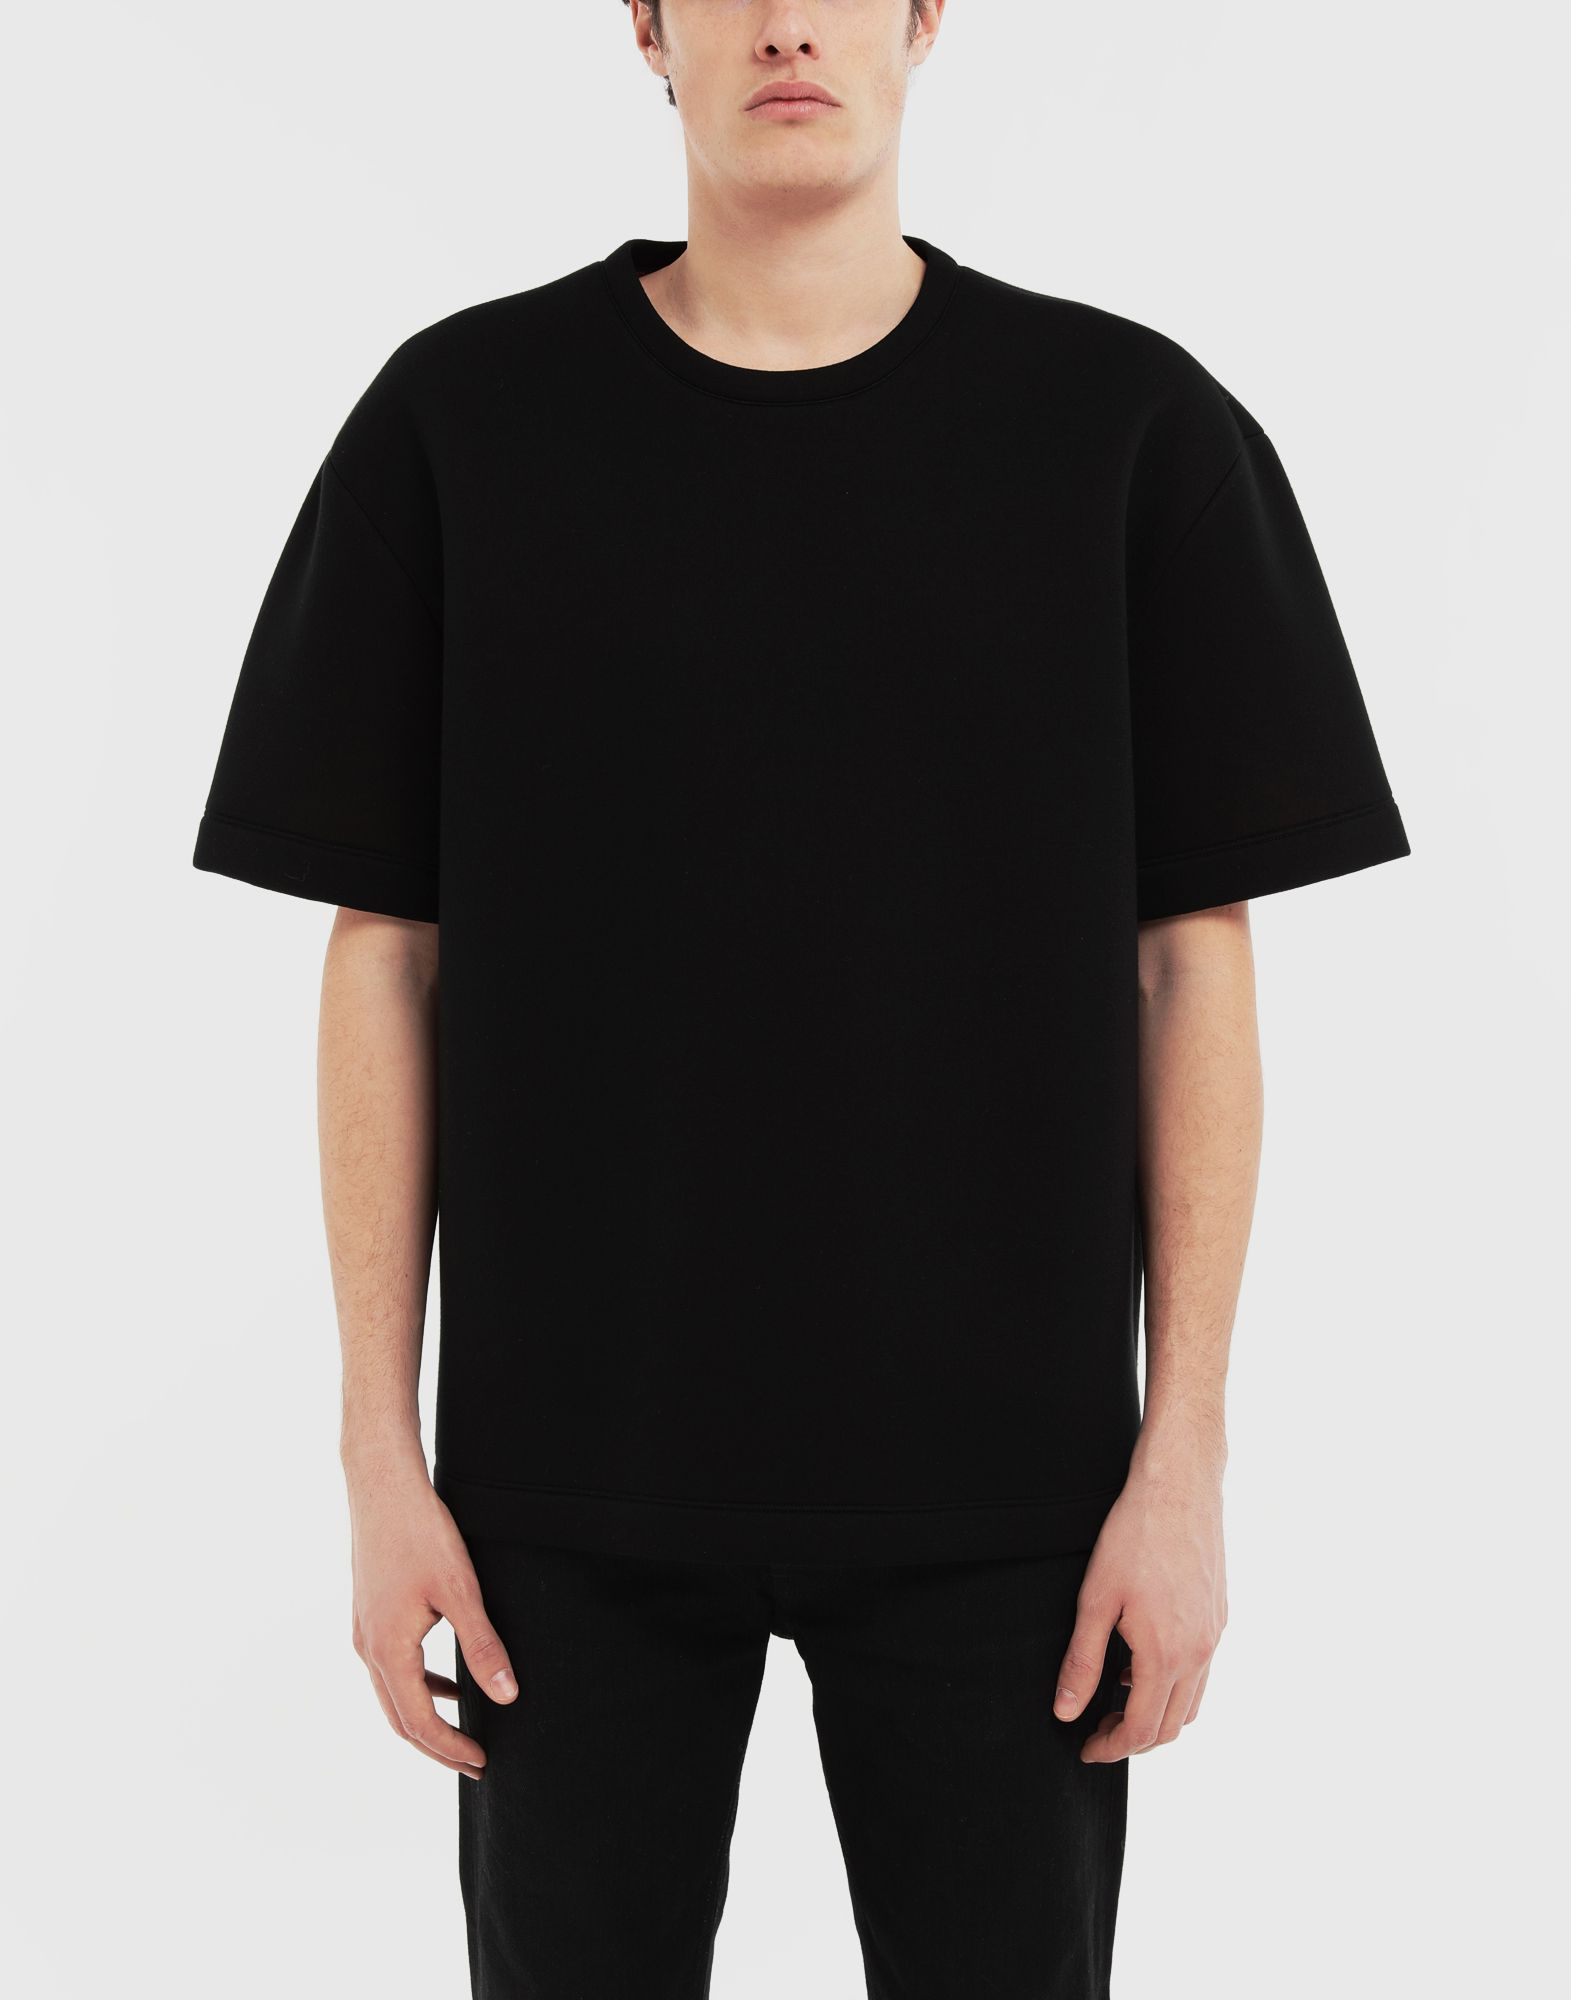 MAISON MARGIELA Scuba oversized top Short sleeve t-shirt Man r